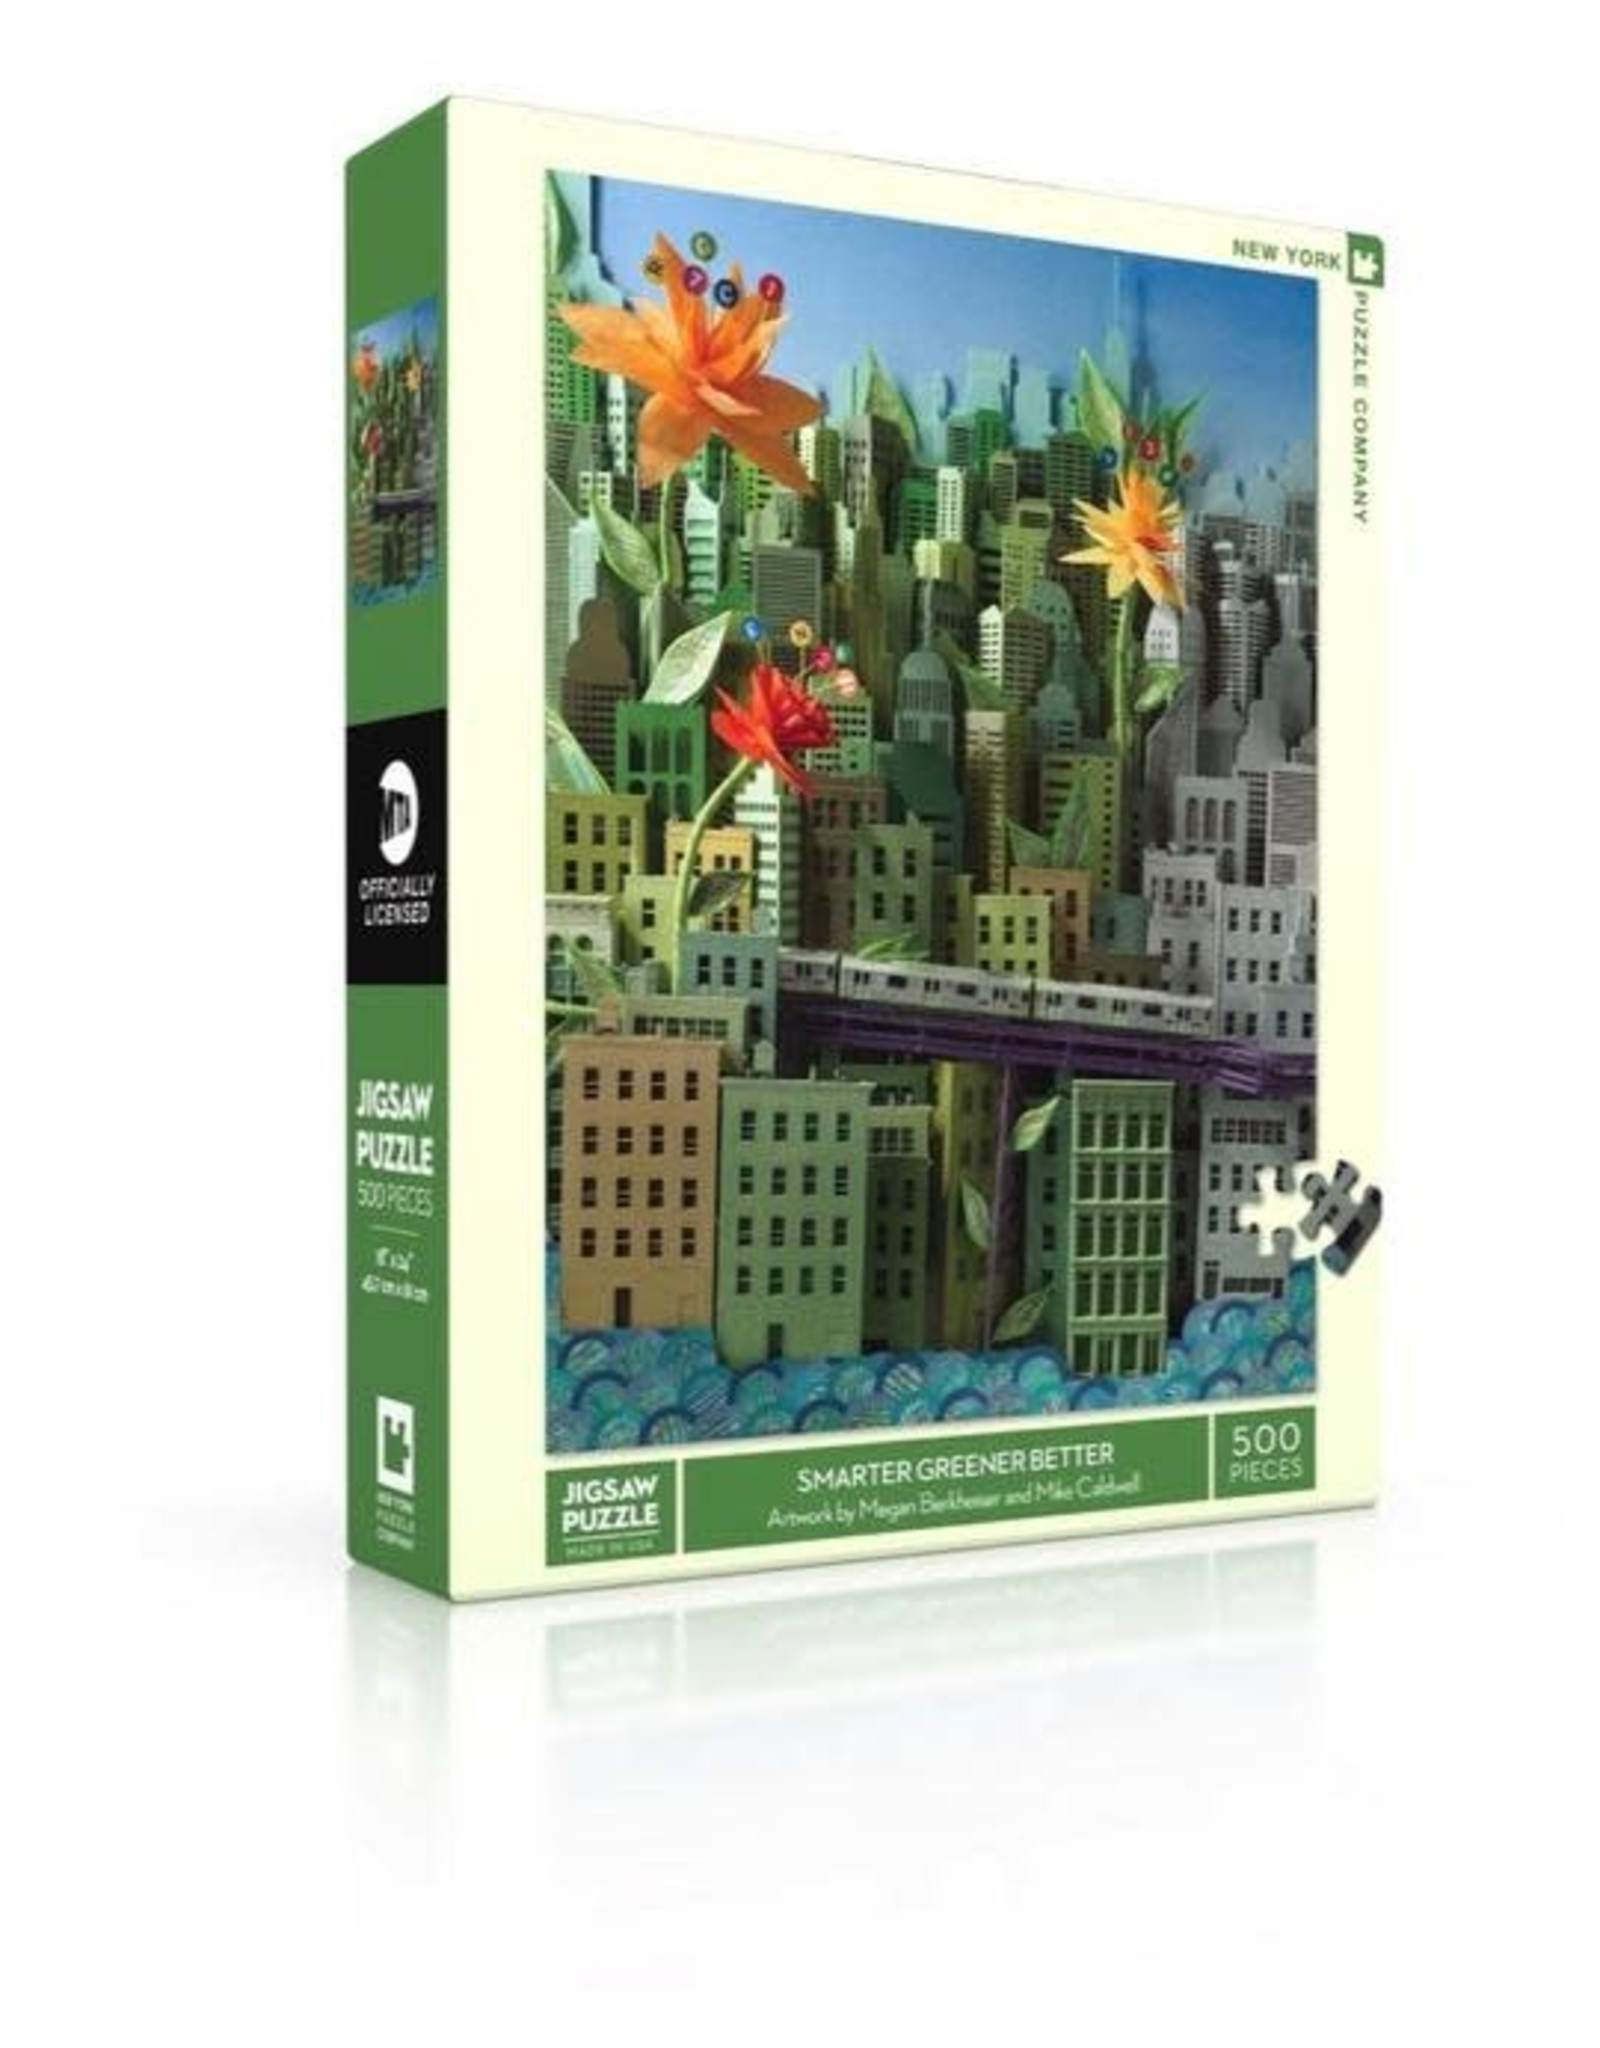 Smarter Greener Better Puzzle, 500 pieces